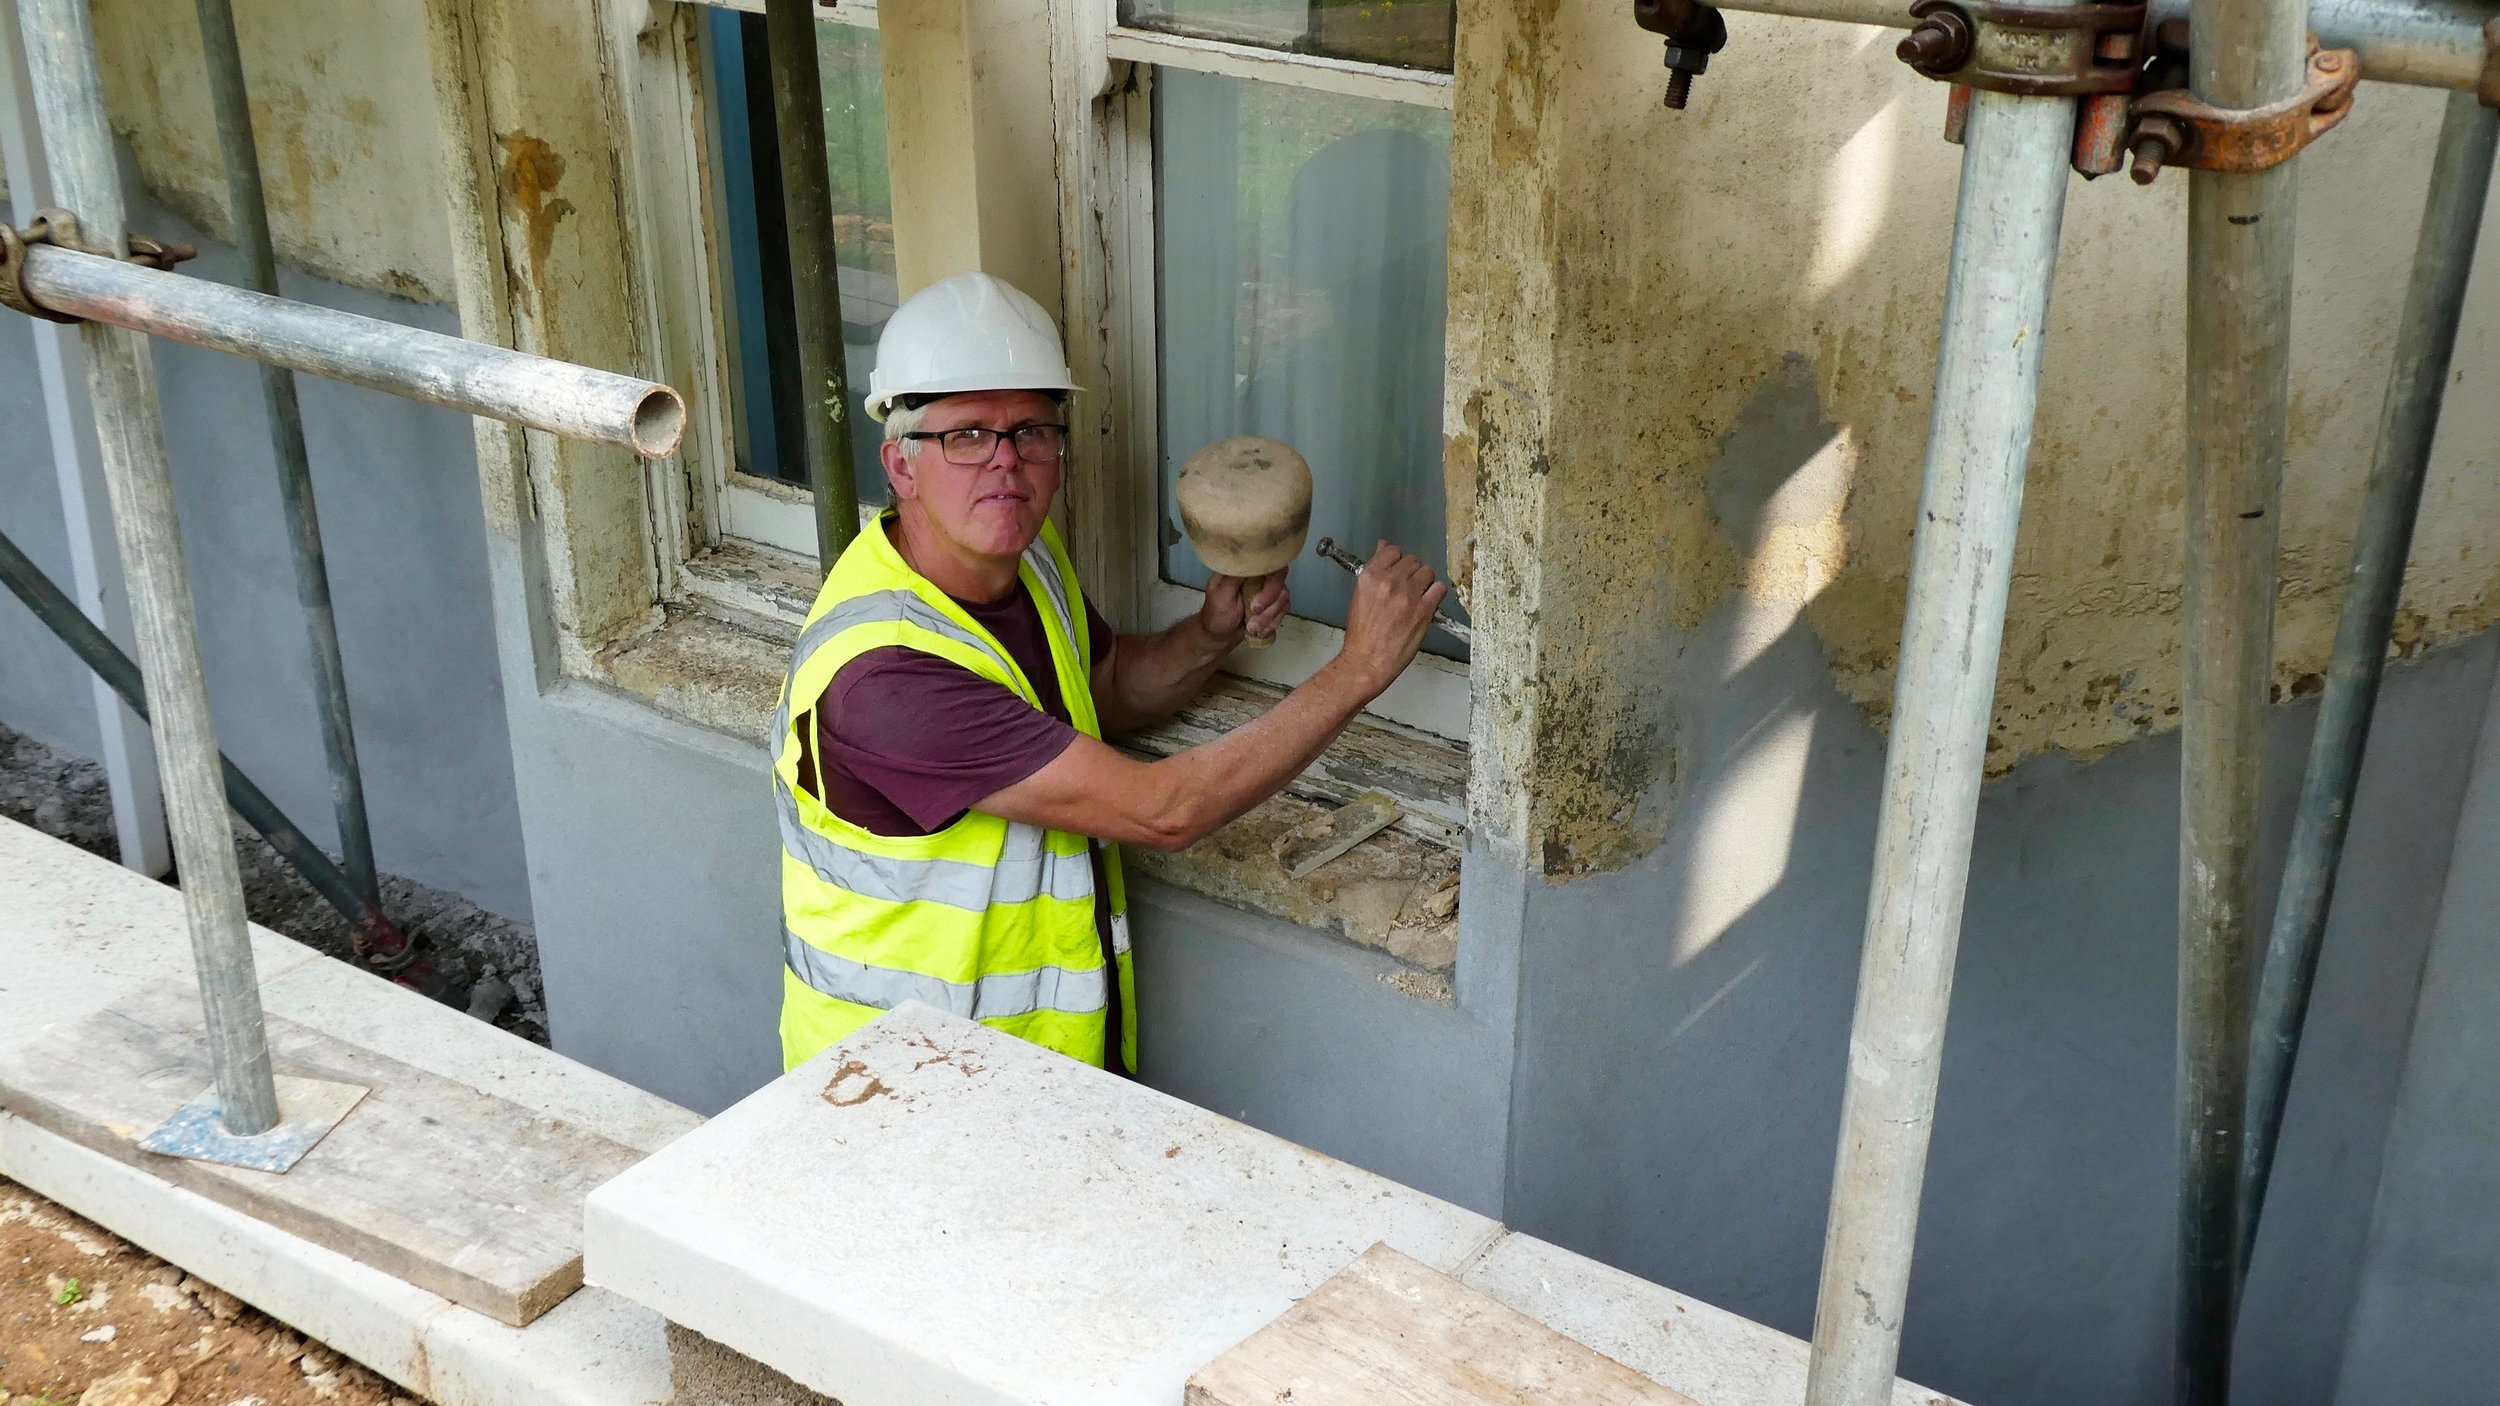 Andrew Cooper, Master Stonemason, begins the restoration of Andrew House.